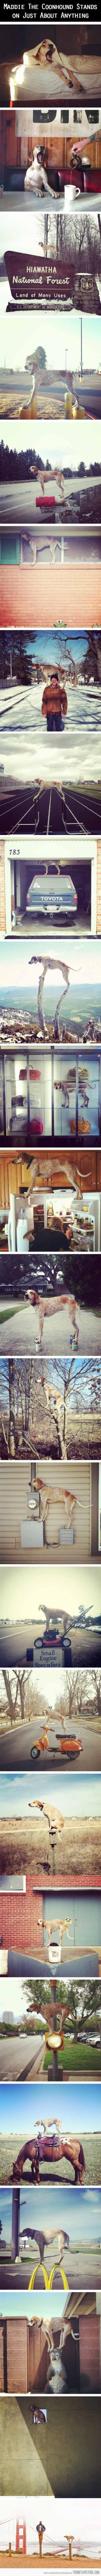 Meet Maddie, she likes to stand on things… This will forever make me smile :)!: Animals, Dogs, Things This, Likes, Funny, Coonhound, Meet Maddie